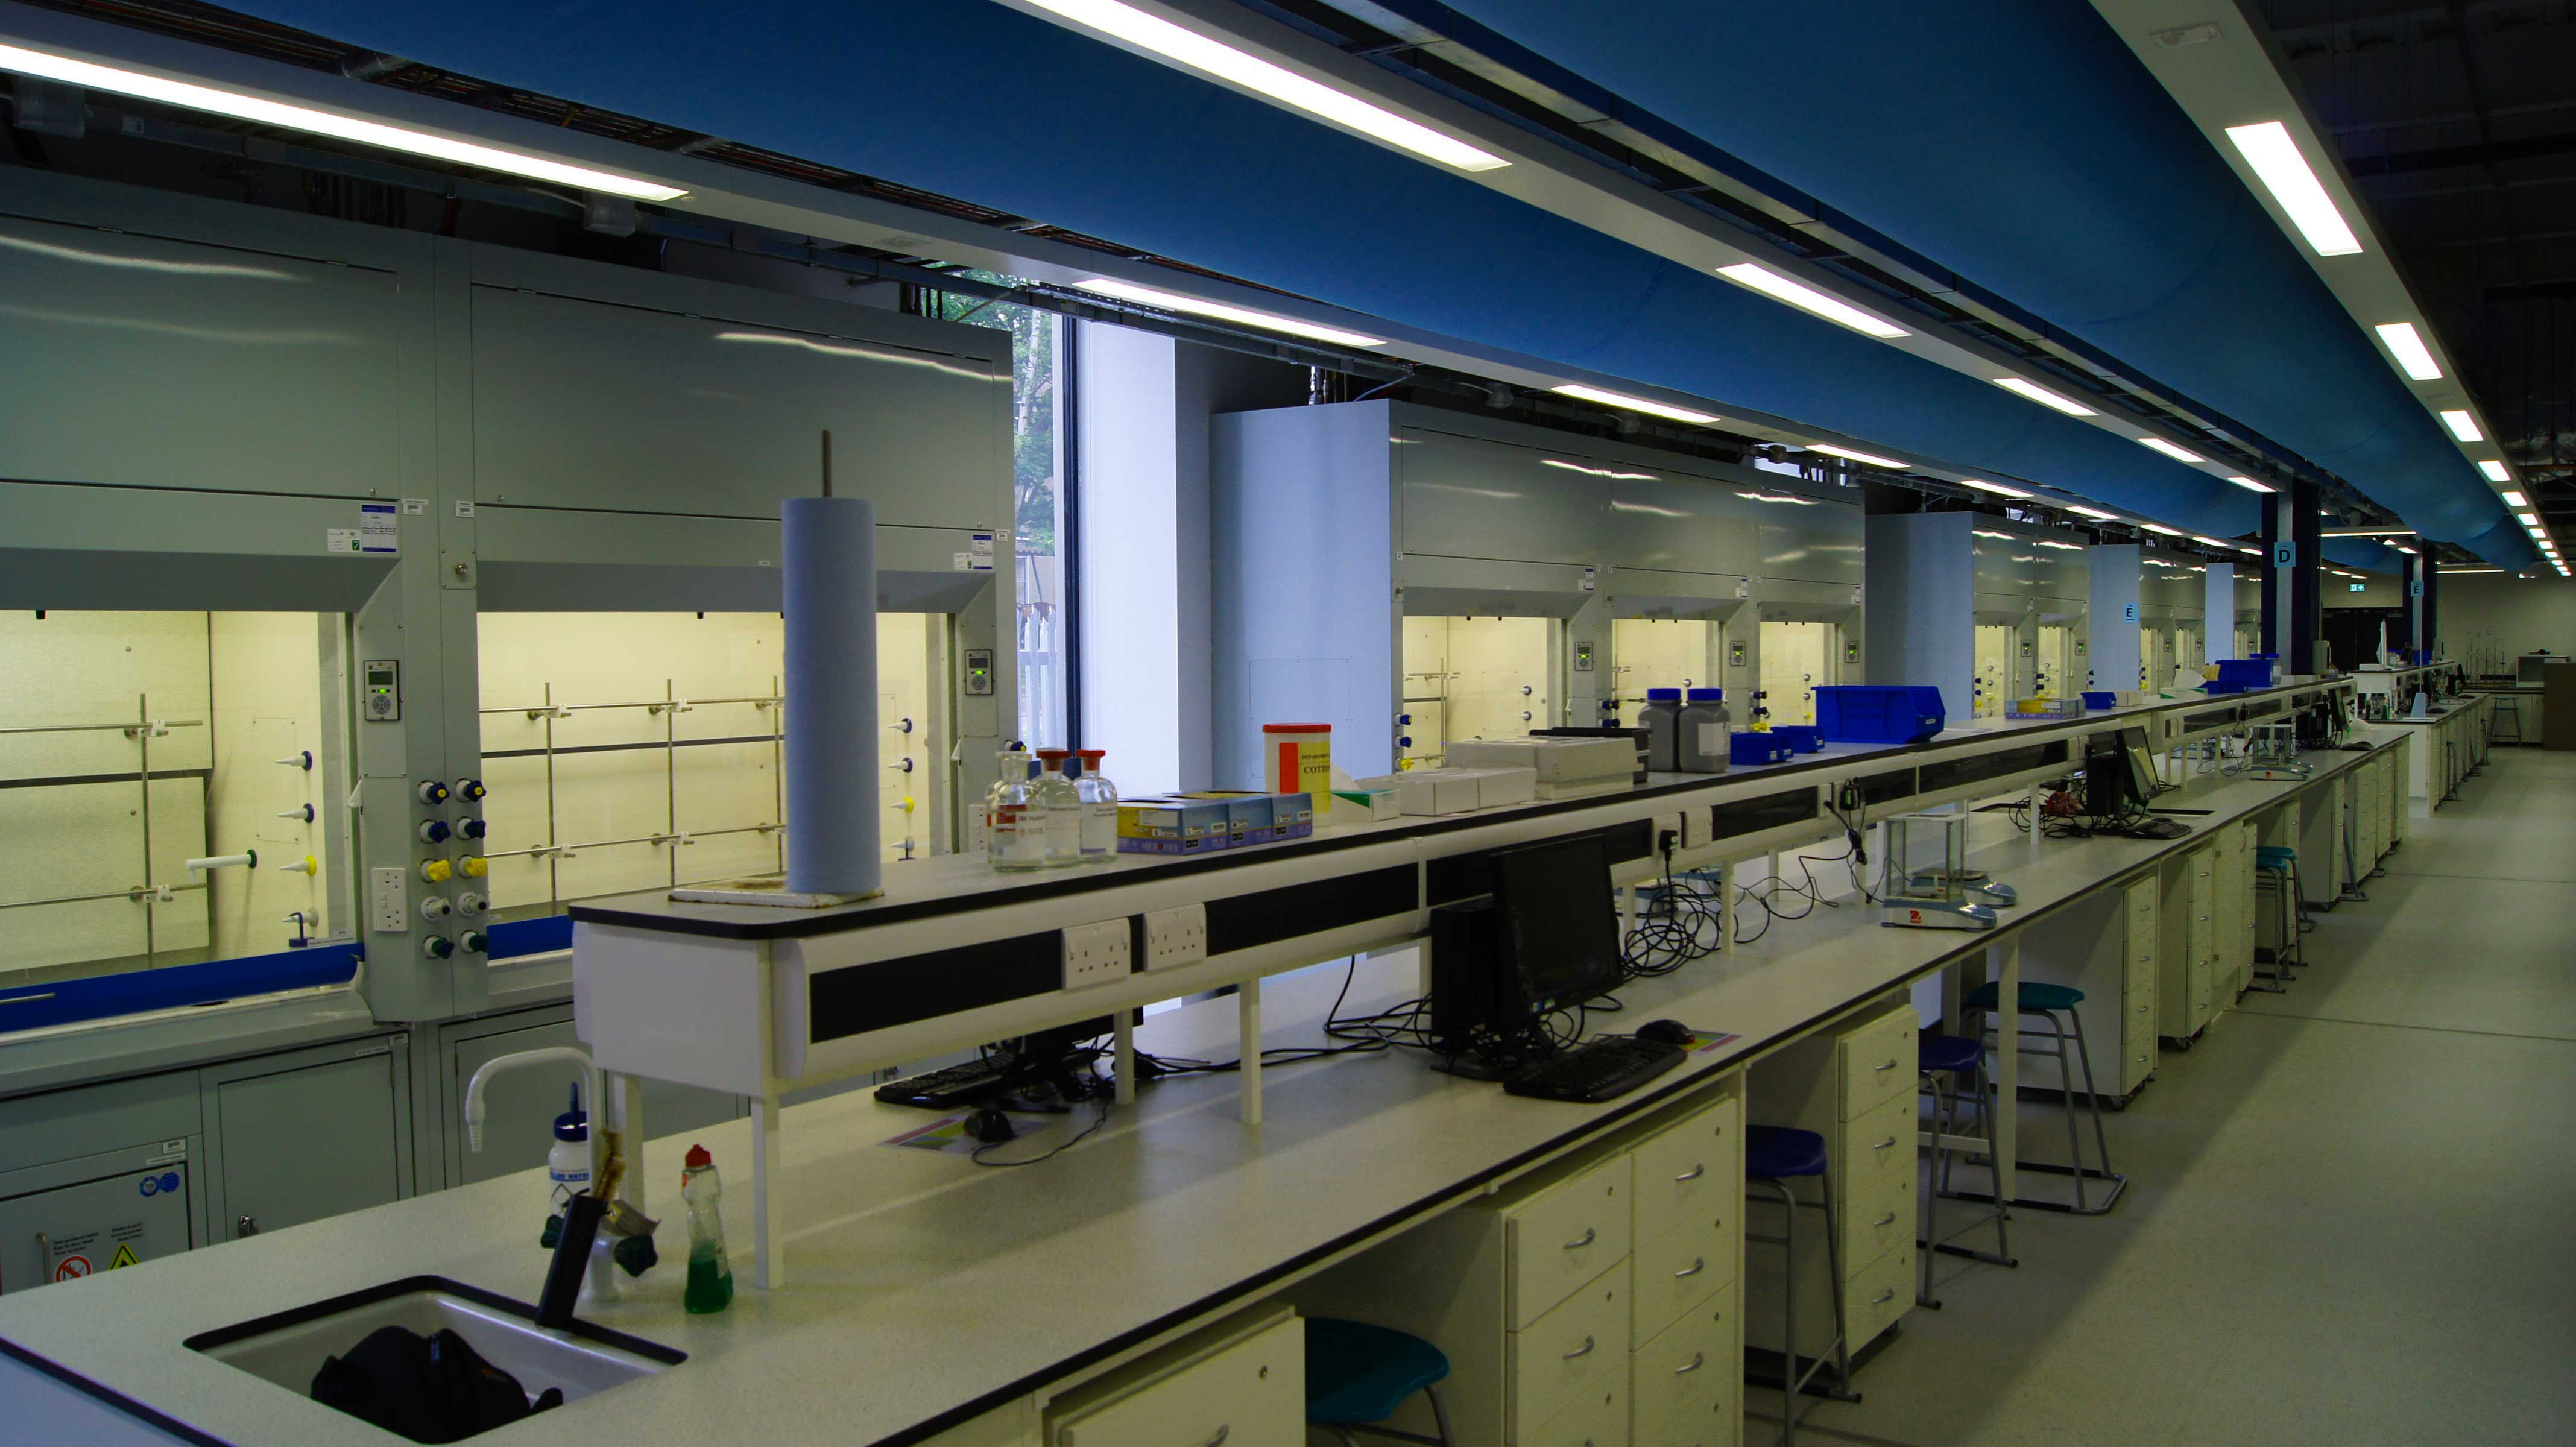 laboratory benches with air diffusers overhead